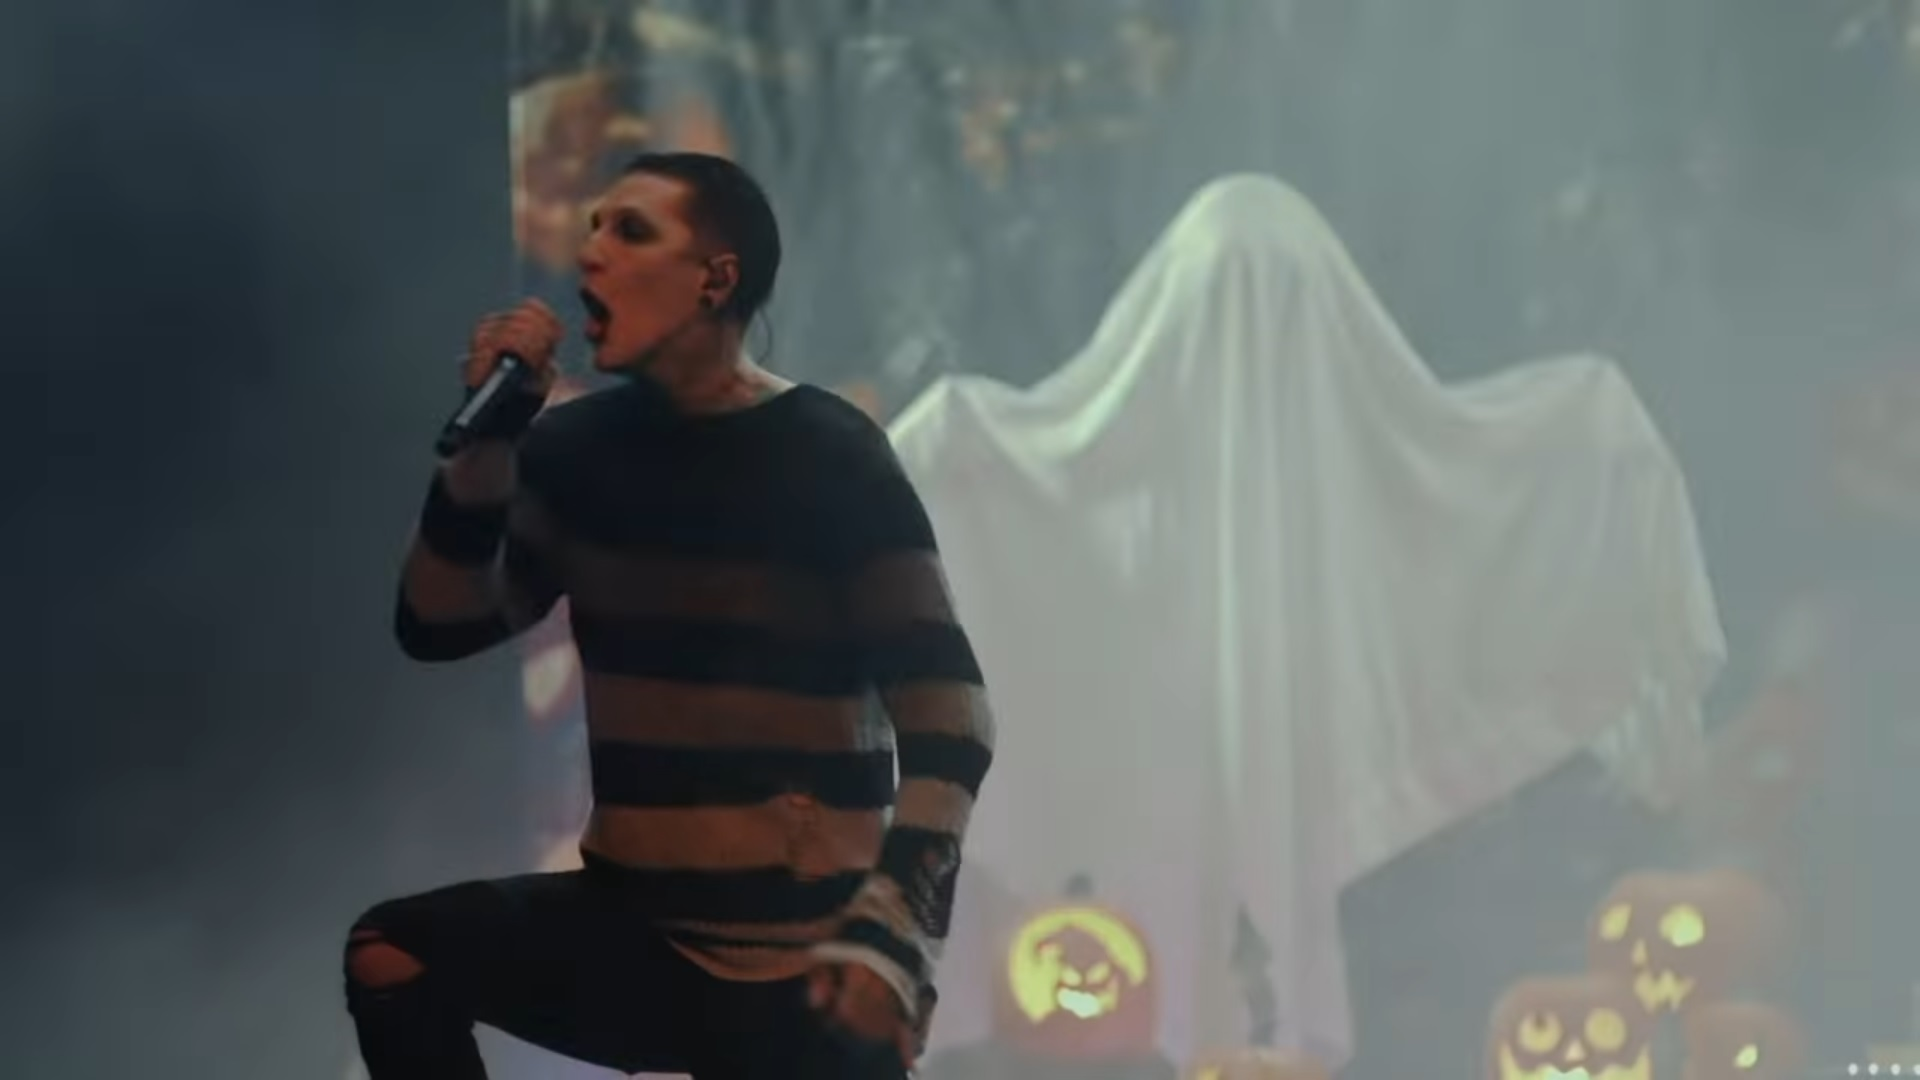 motionless in white livevideo 2019 news